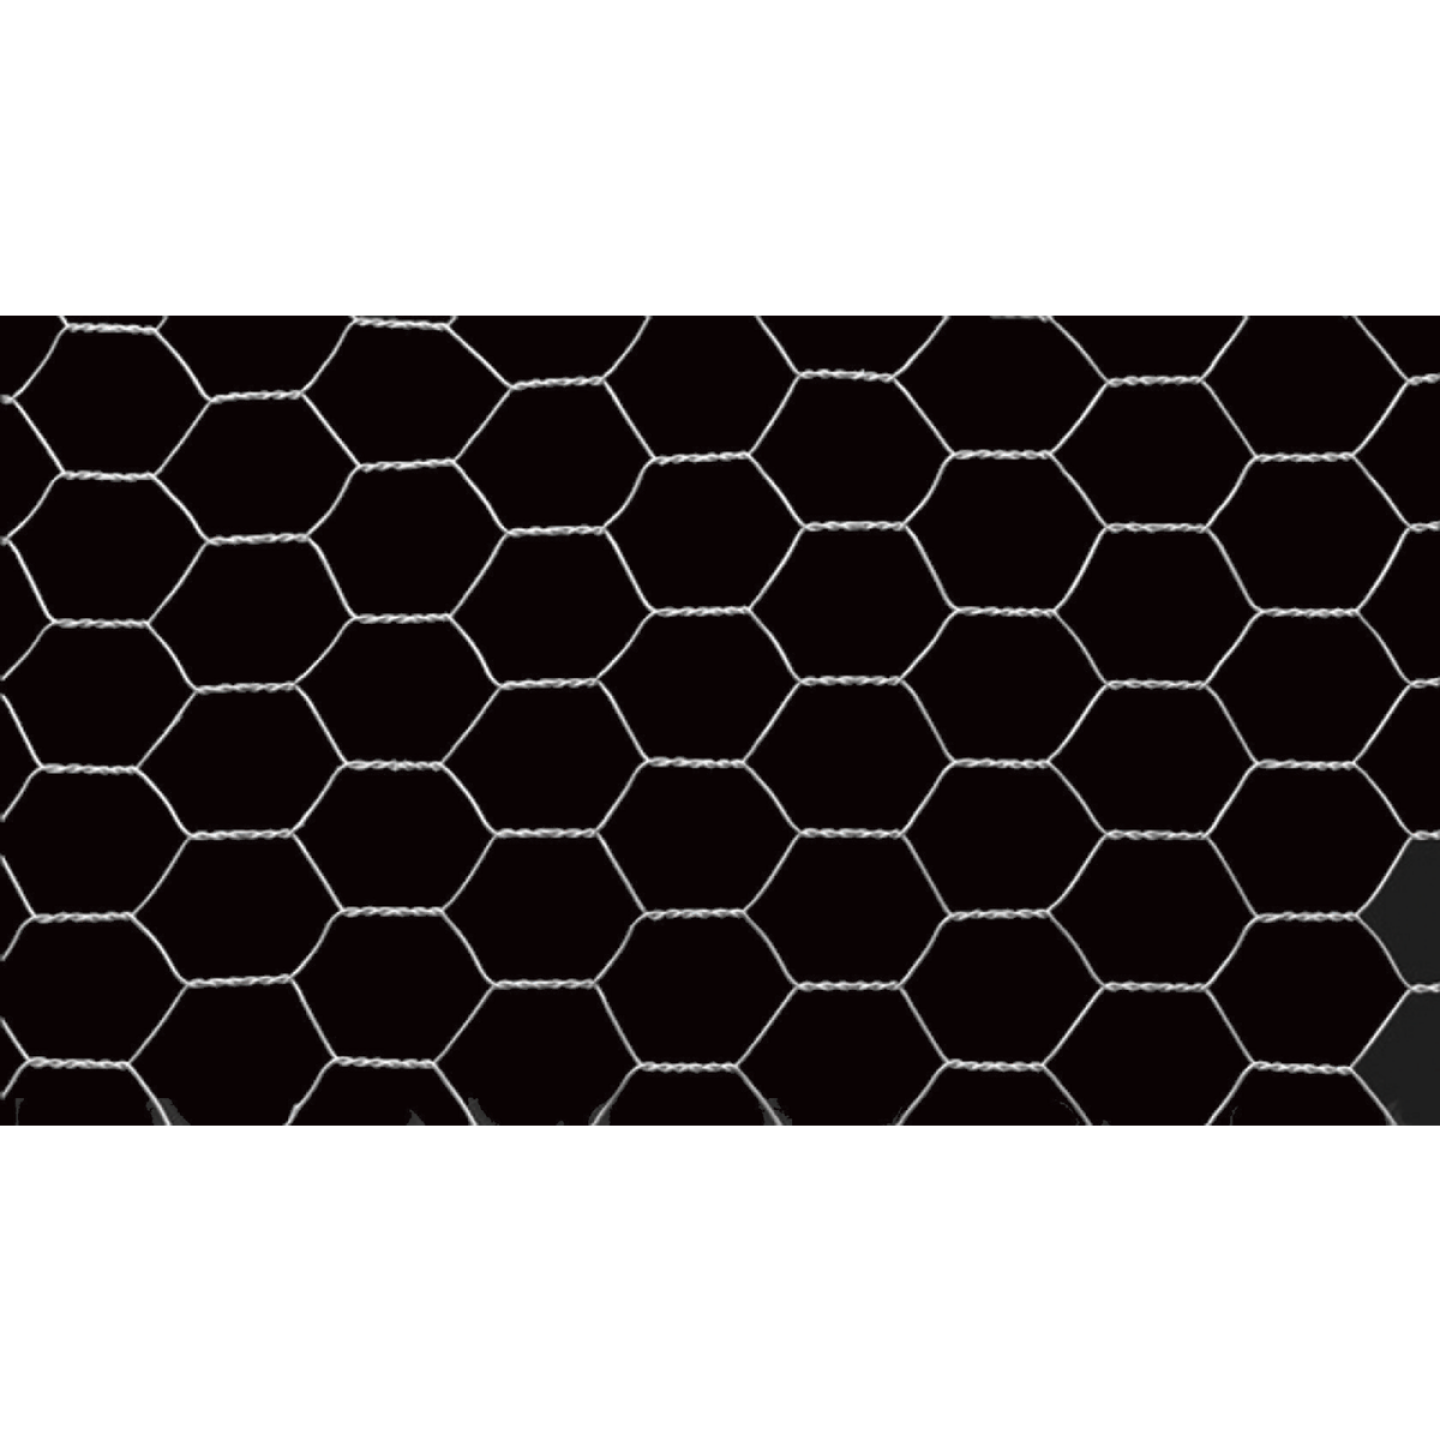 Do it 2 In. x 24 In. H. x 25 Ft. L. Hexagonal Wire Poultry Netting Image 2